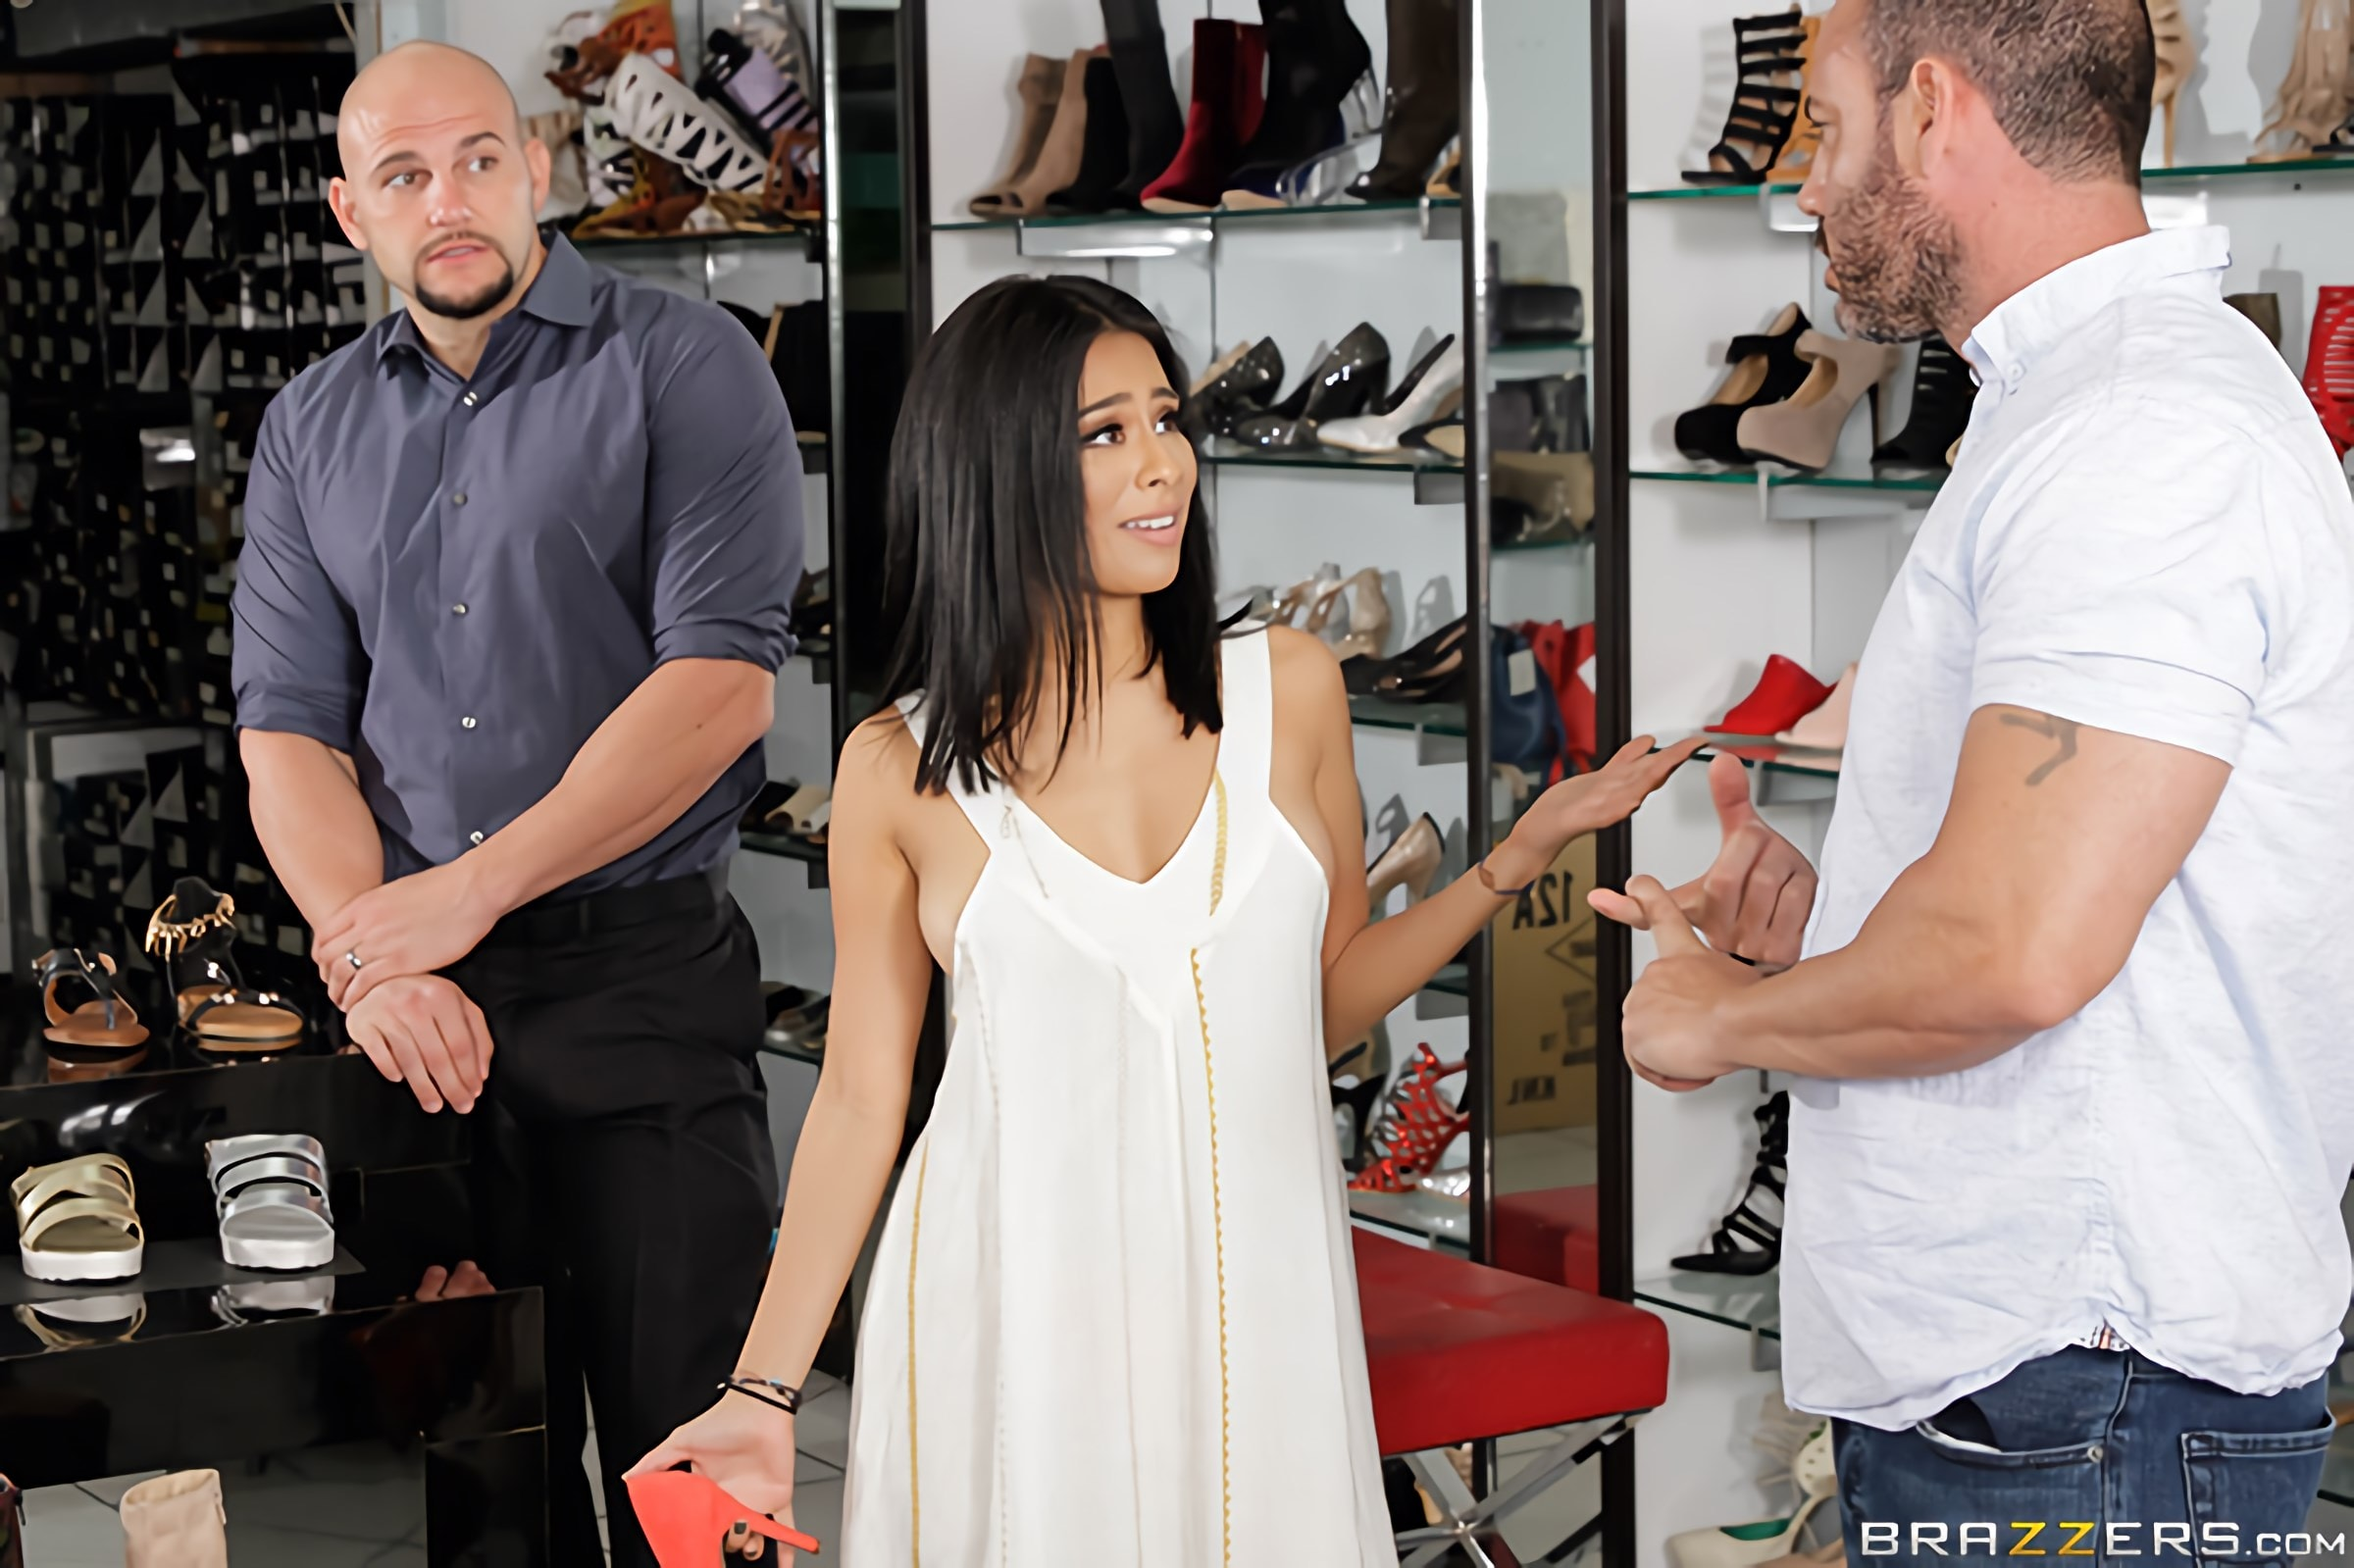 Brazzers 'If The Shoe Fits' starring Monica Asis (photo 1)